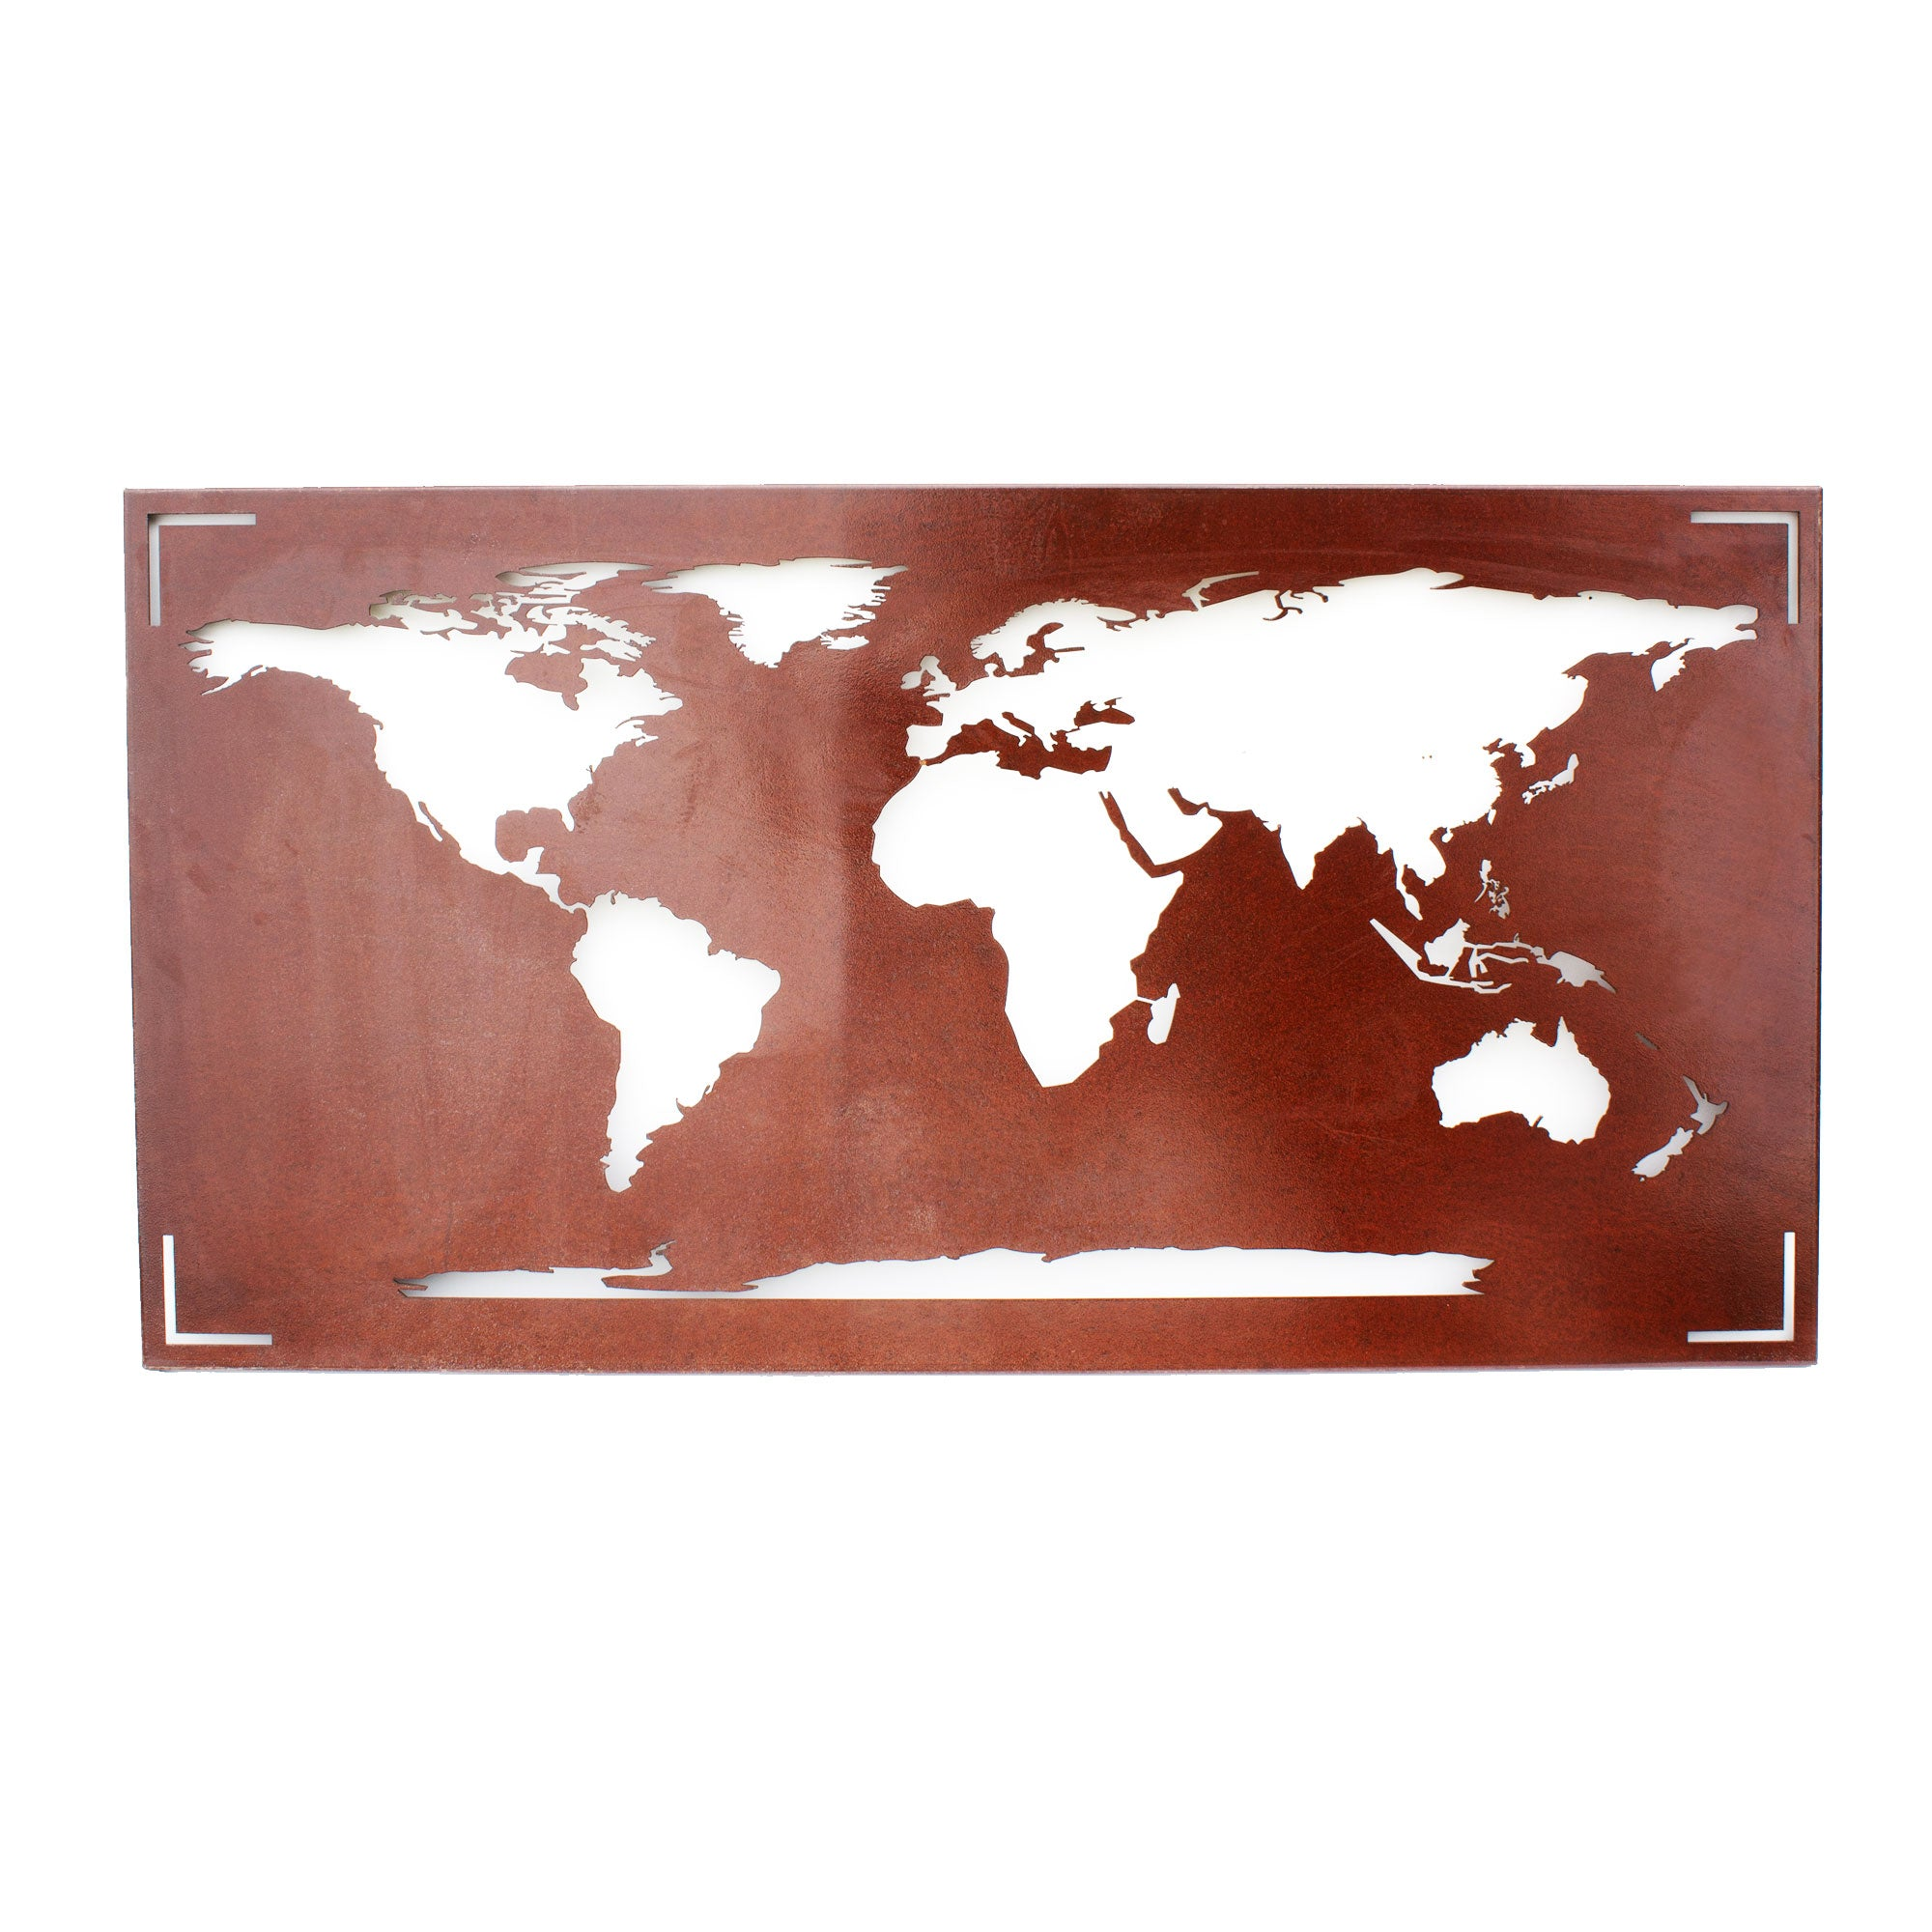 Distressed Metal World Map Wall Art